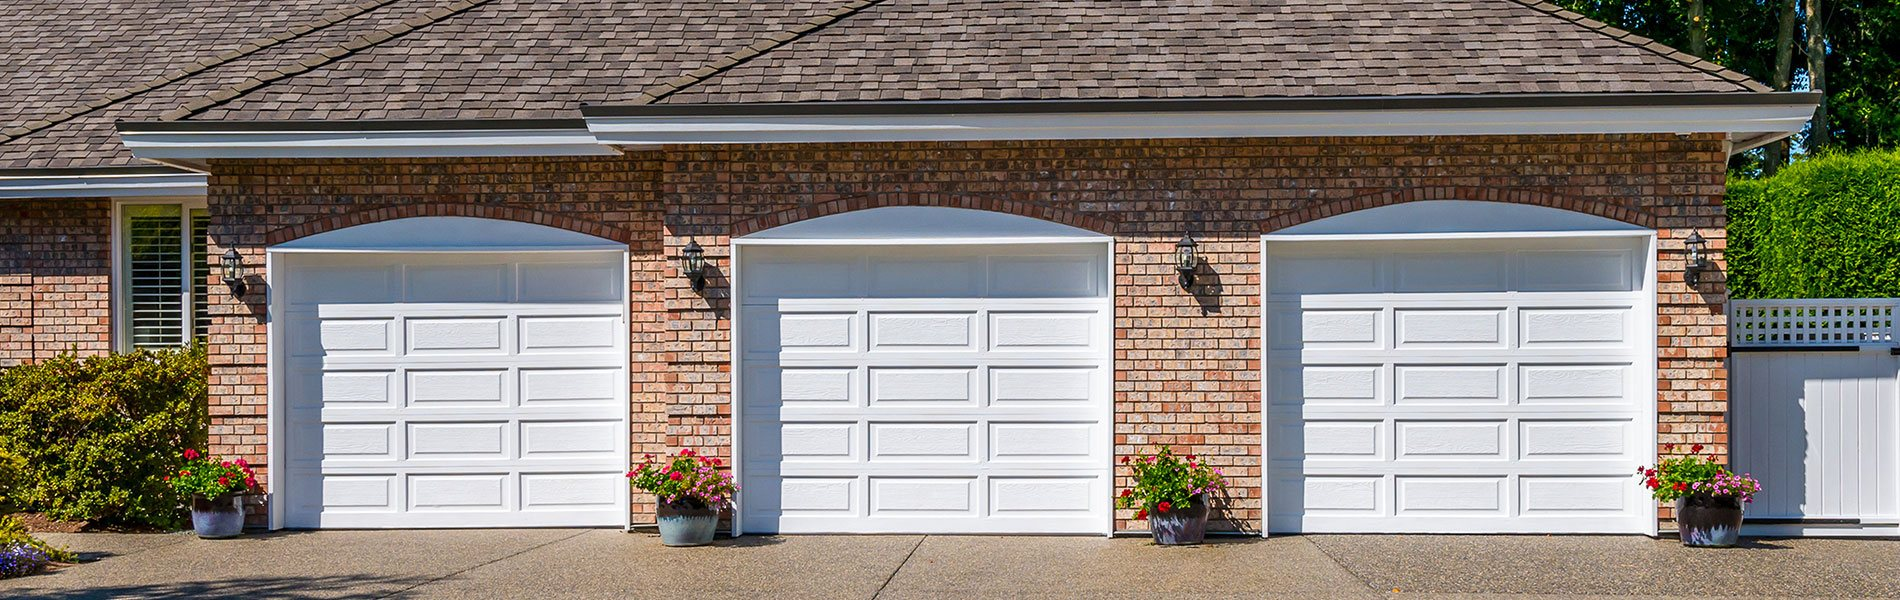 Galaxy Garage Door Service, Thorofare, NJ 856-355-8242